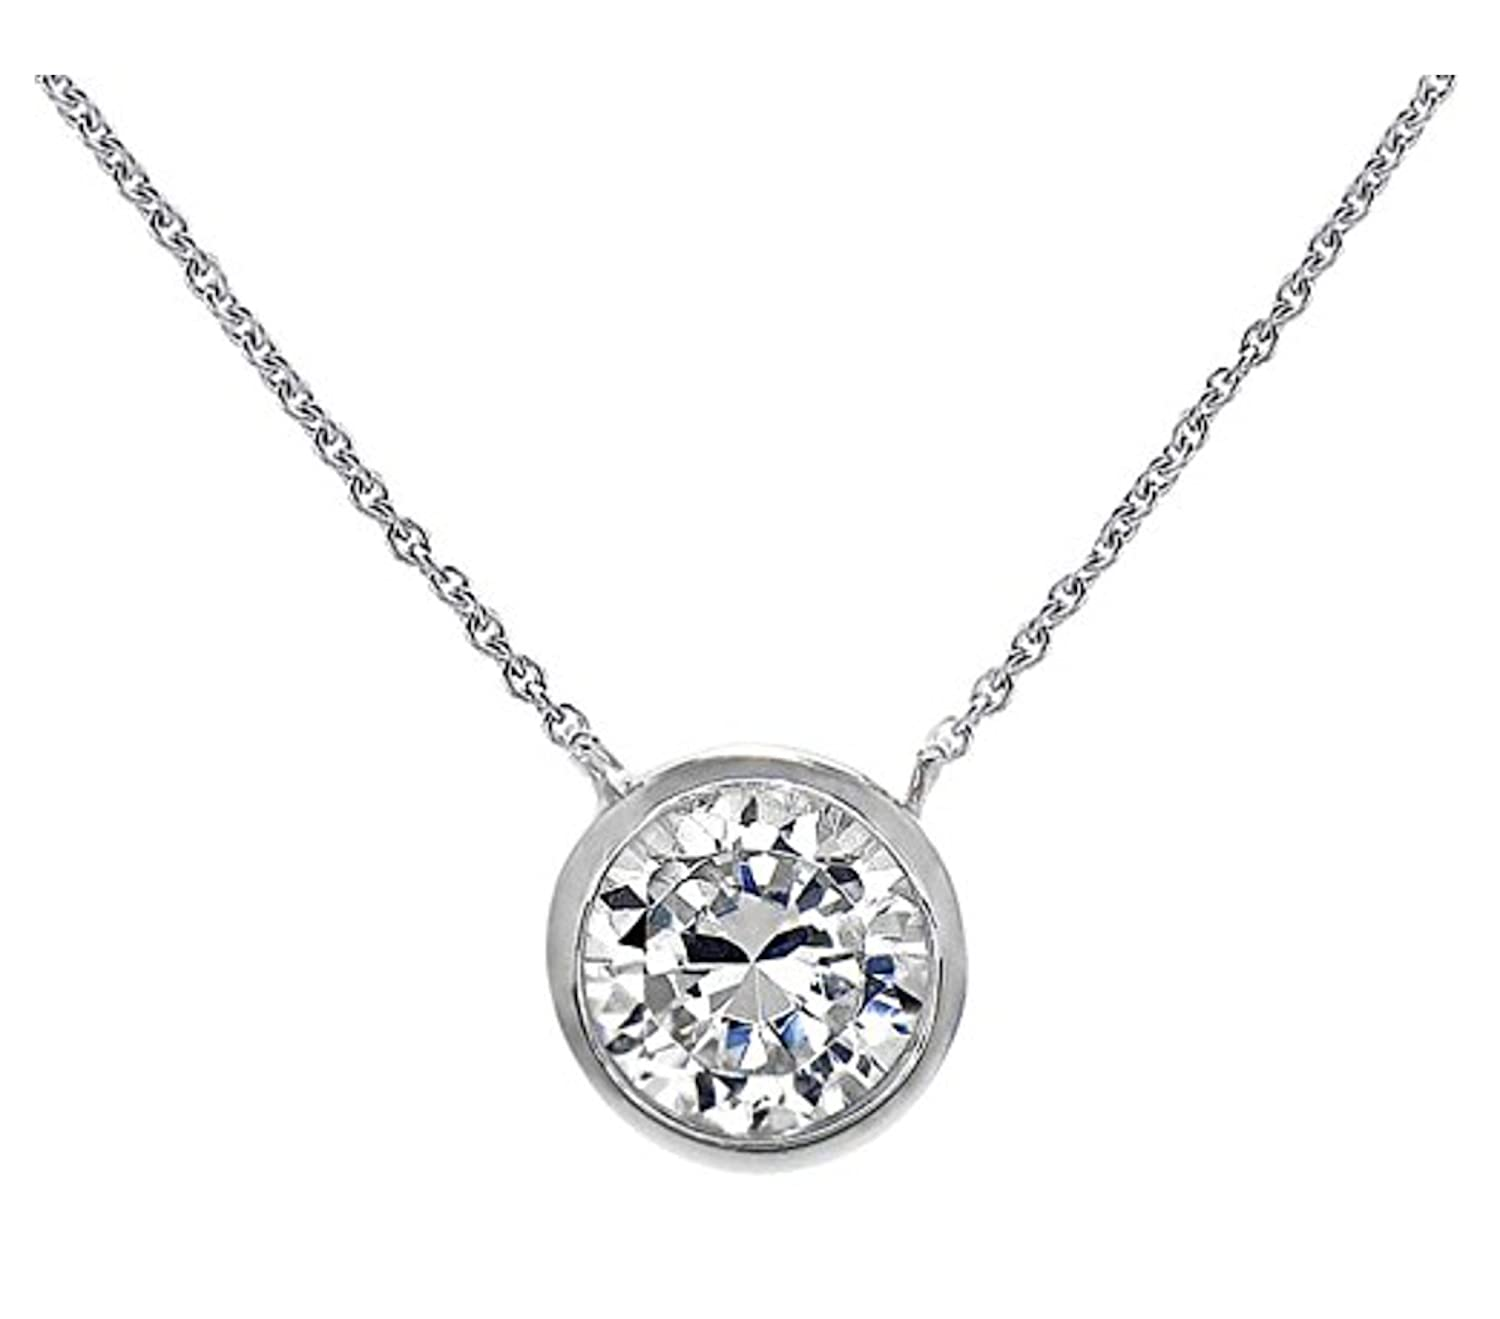 ".925 Sterling Silver Pendant Necklace with Anti Tarnish Mirror Finish Round Bezel 8mm CZ 16"" - 18"""